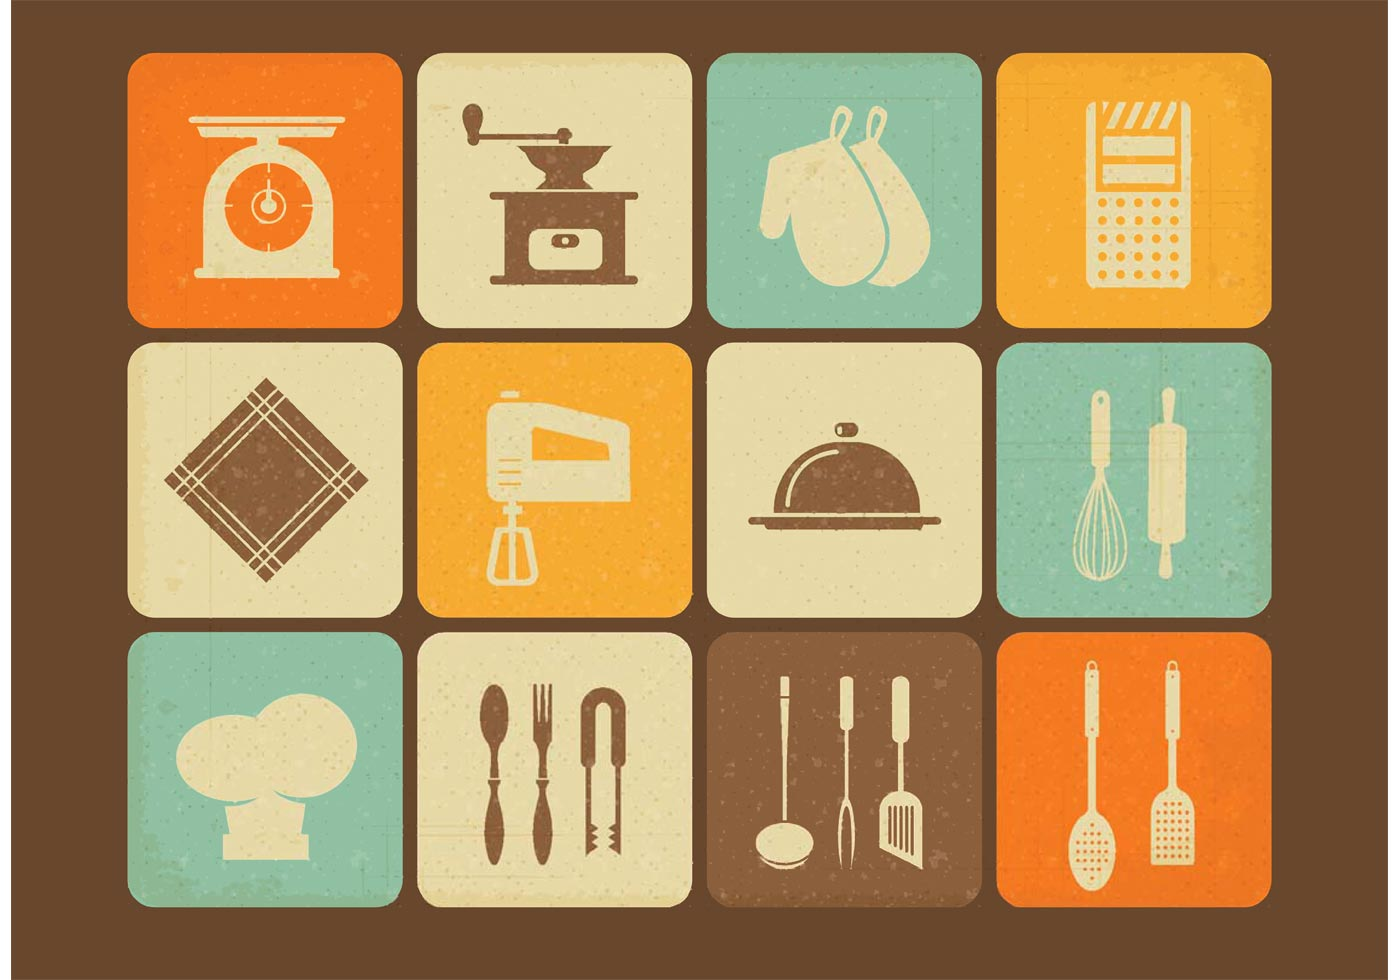 Free Vintage Kitchen Utensils Vector Icons - Download Free ...